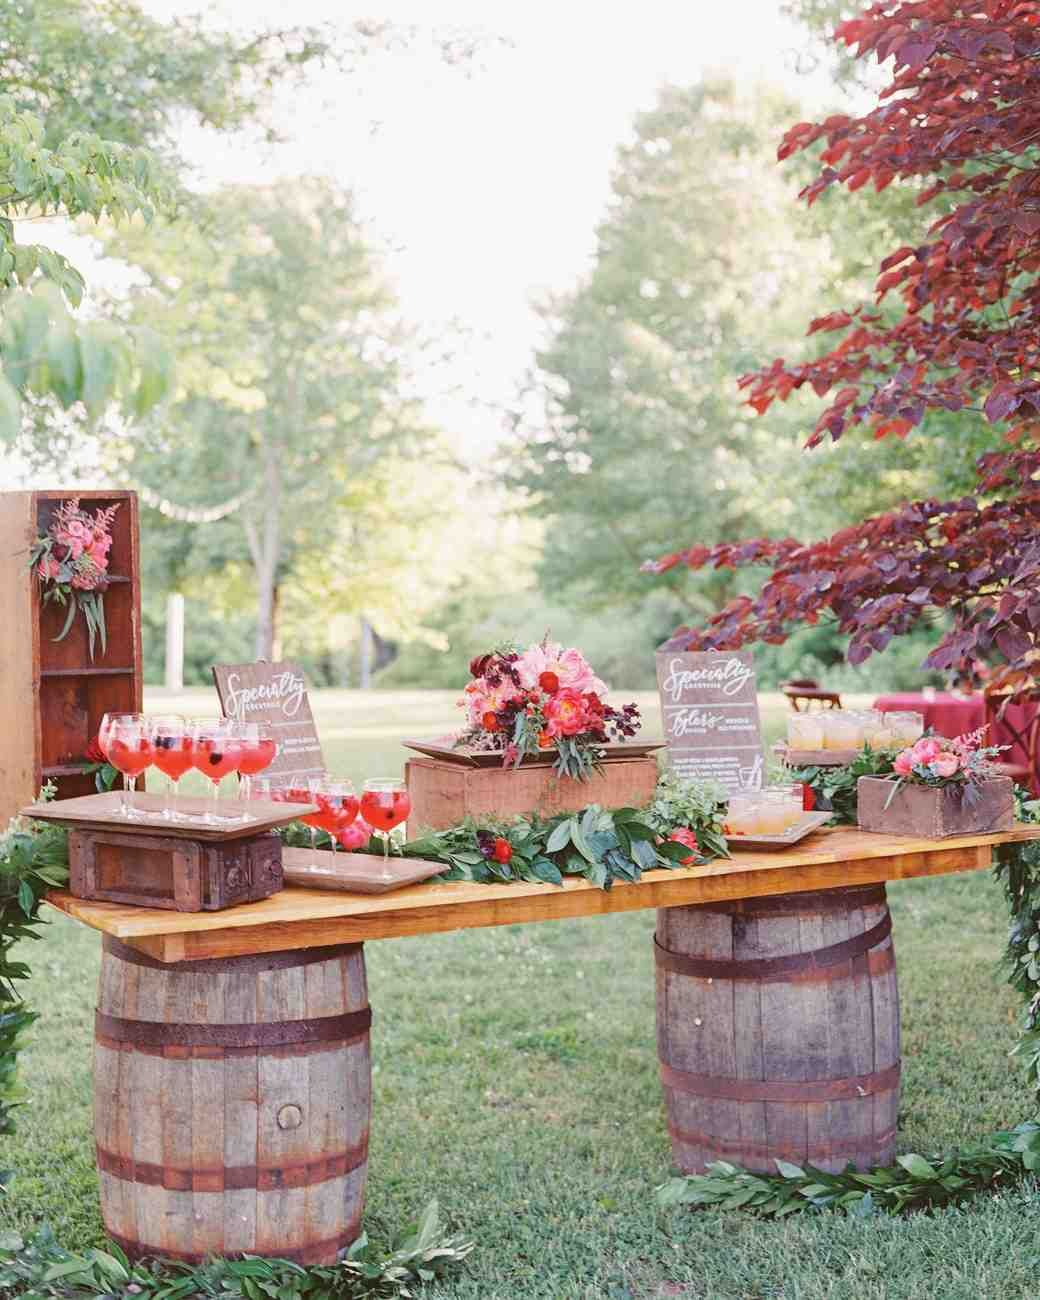 Outdoor Wedding Bar Ideas: Trending Now: Drink Stations To Elevate Your Reception